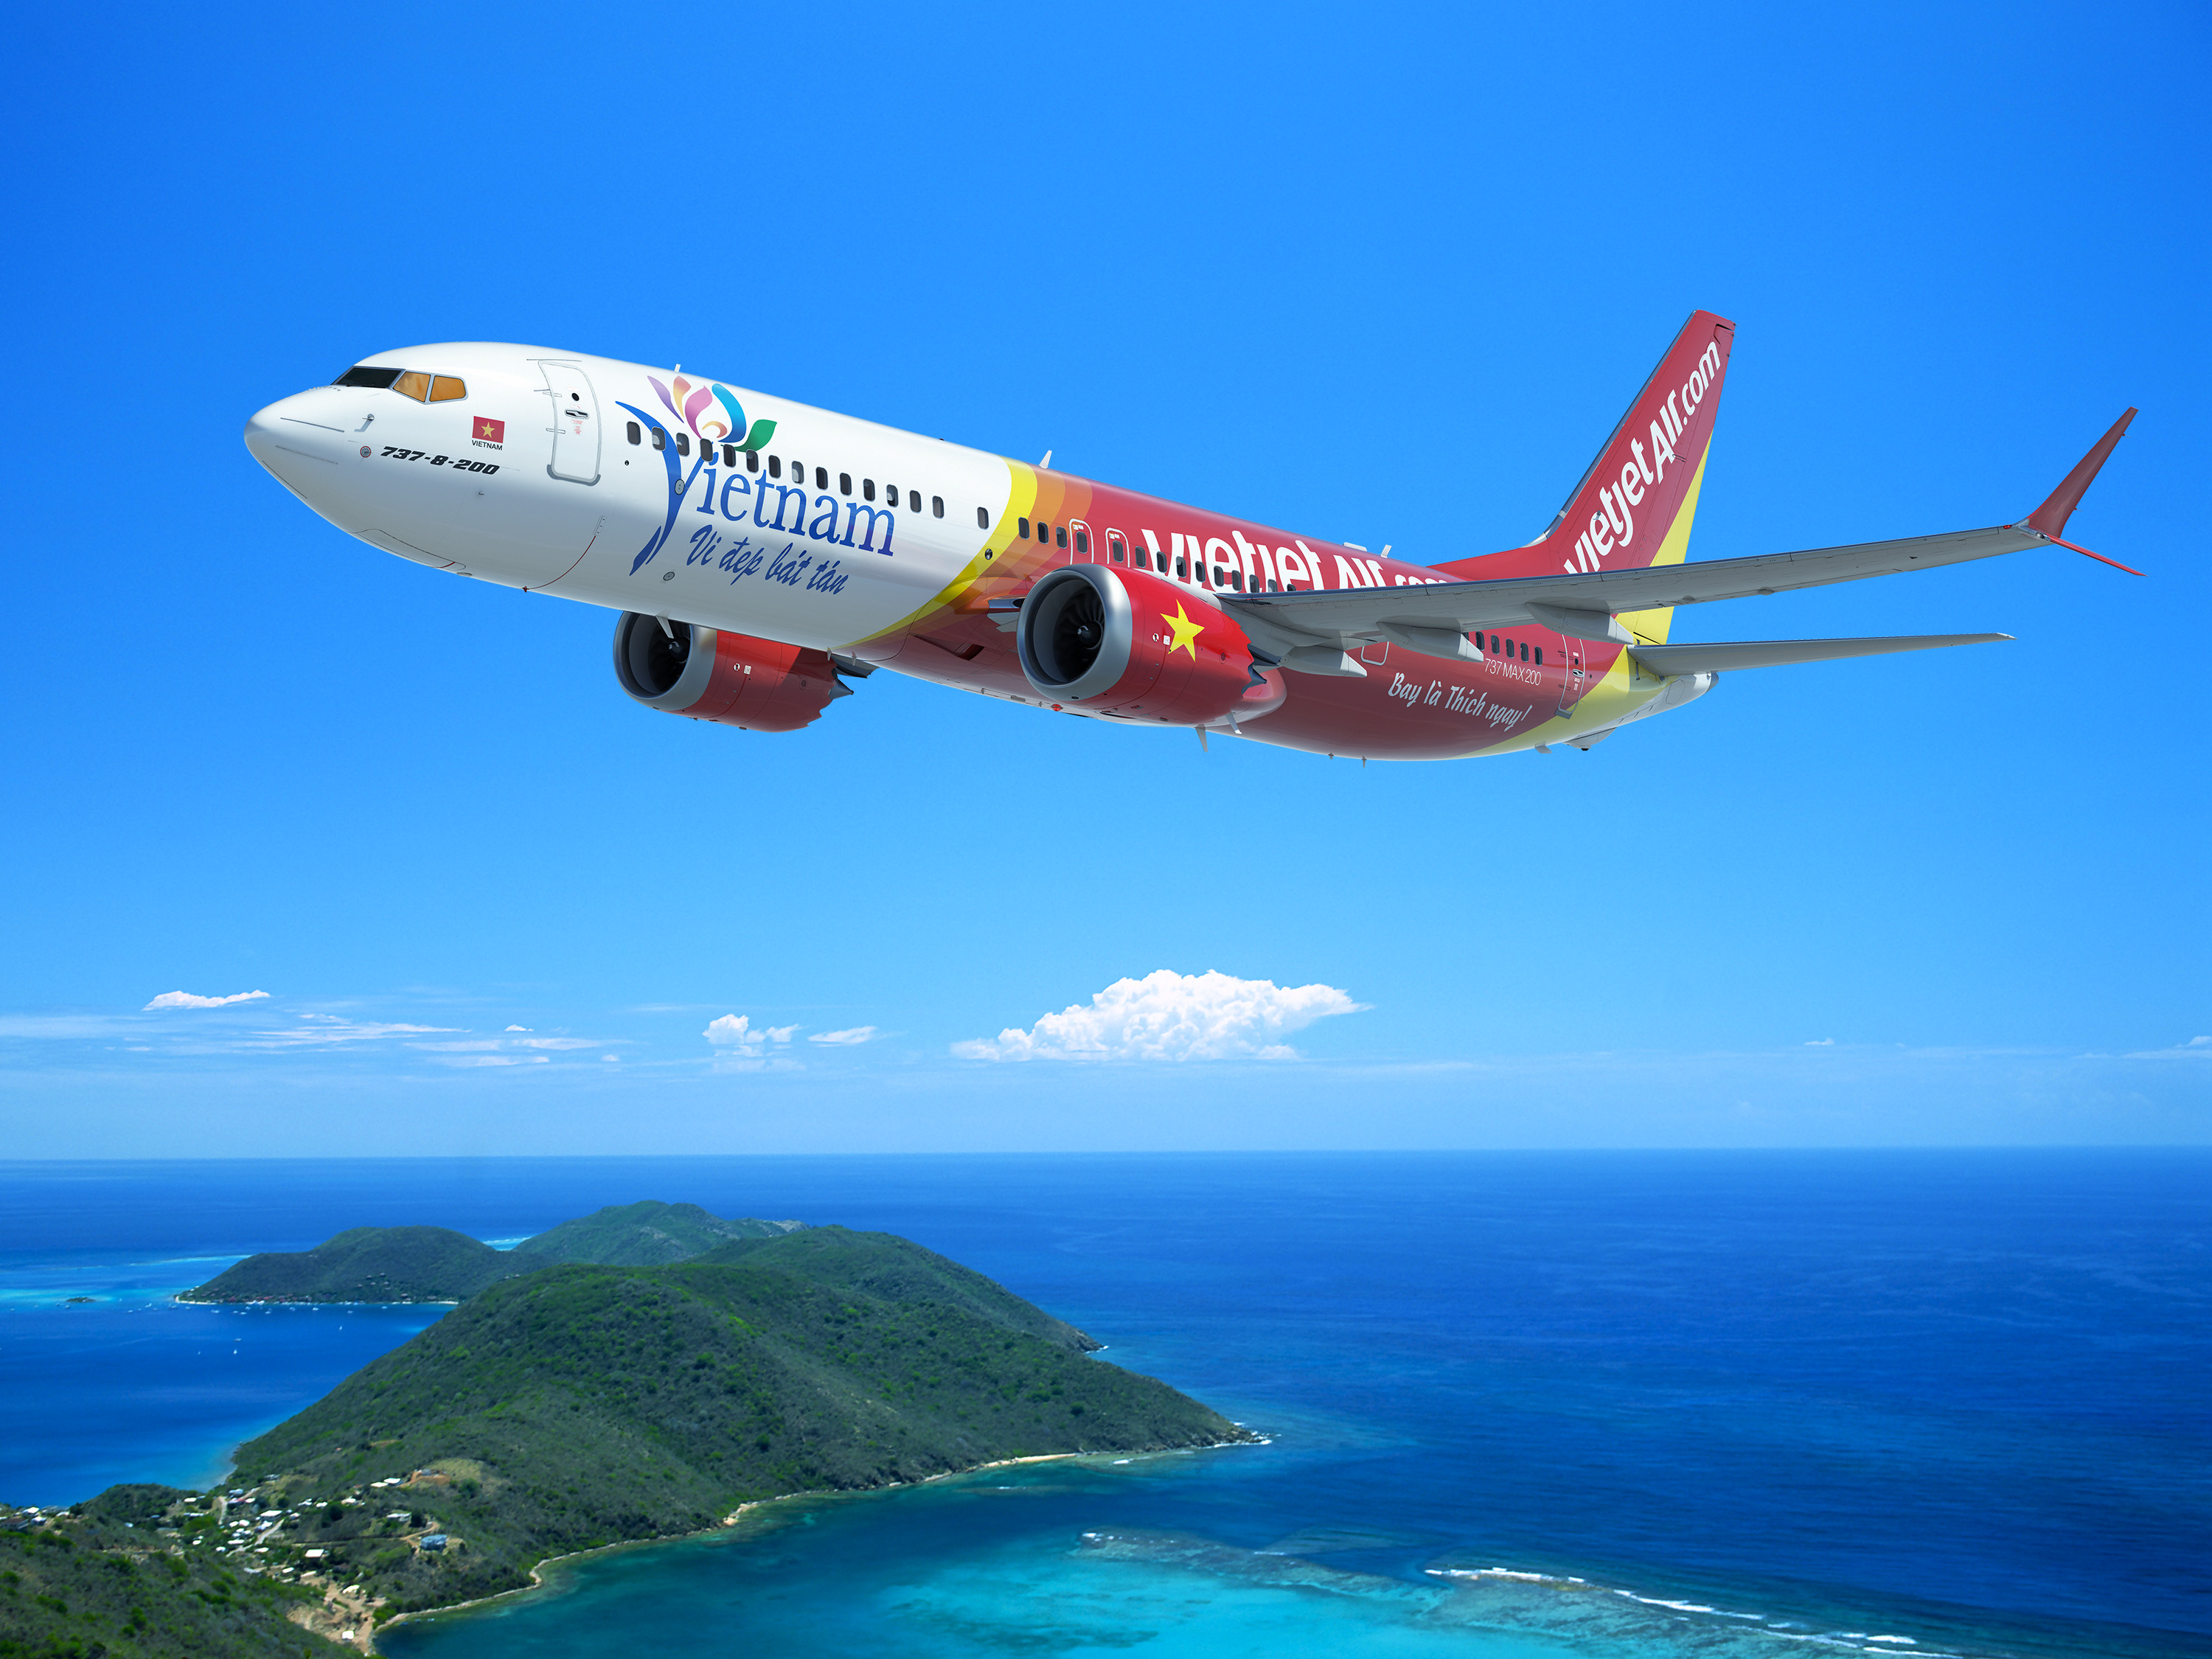 Picture from Boeing - This order from VietJet marks the biggest order in Vietnamese Aviation history!